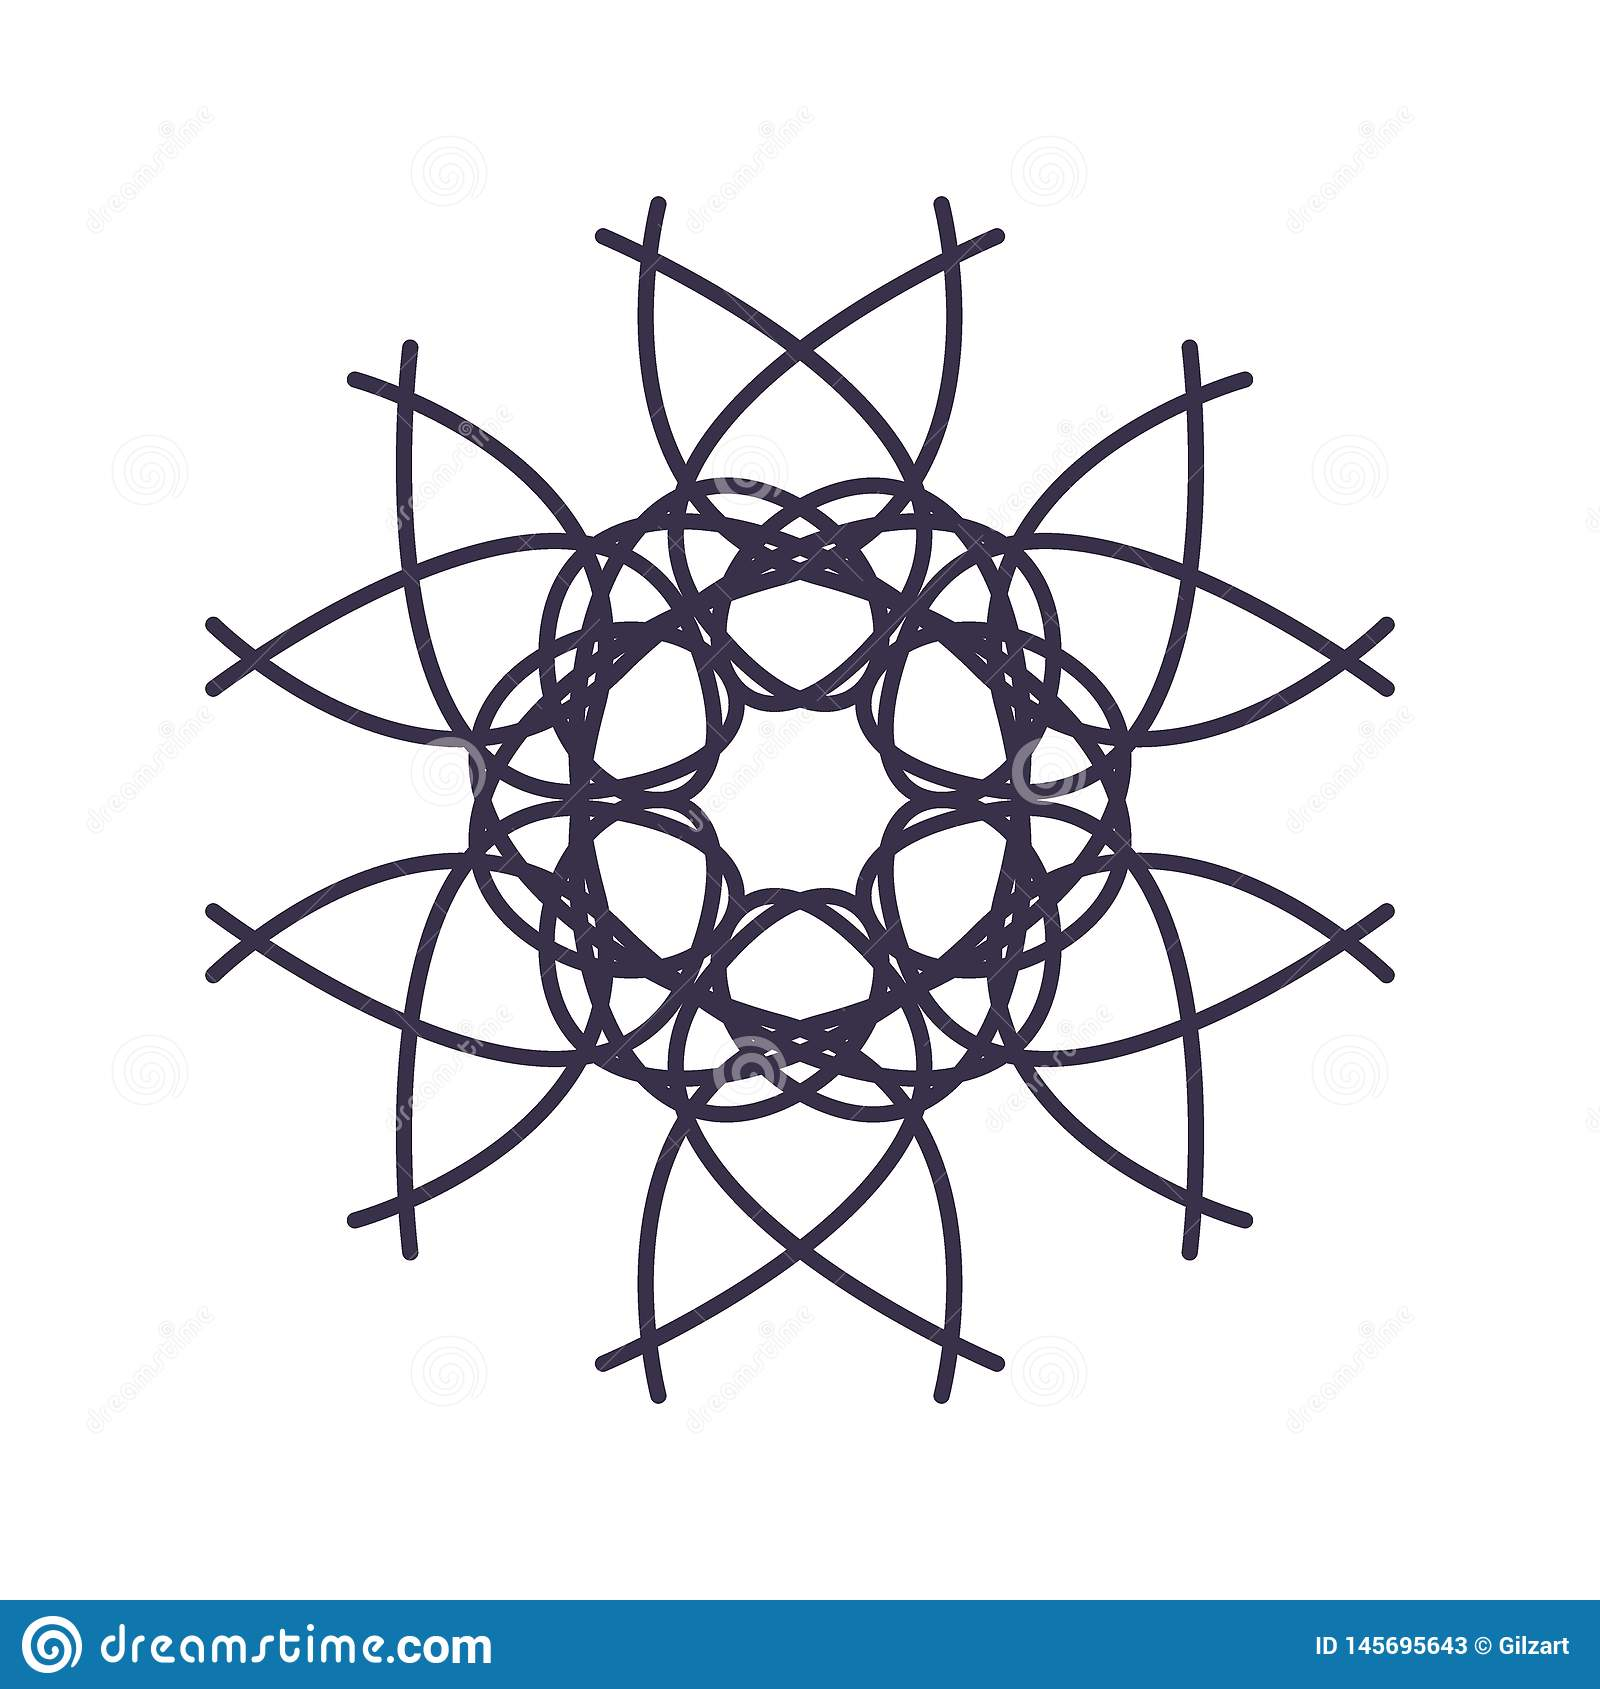 Abstract Mandala Geometry Outline for decoration or tattoo